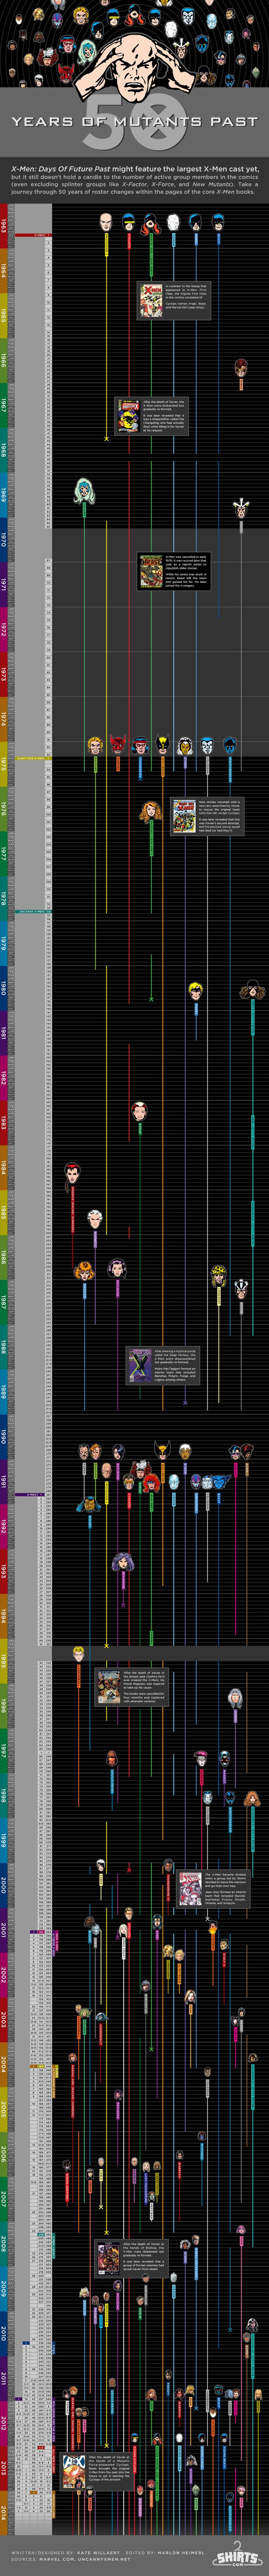 A Handy Infographic Guide To The Past 50 Years Of The X-Men